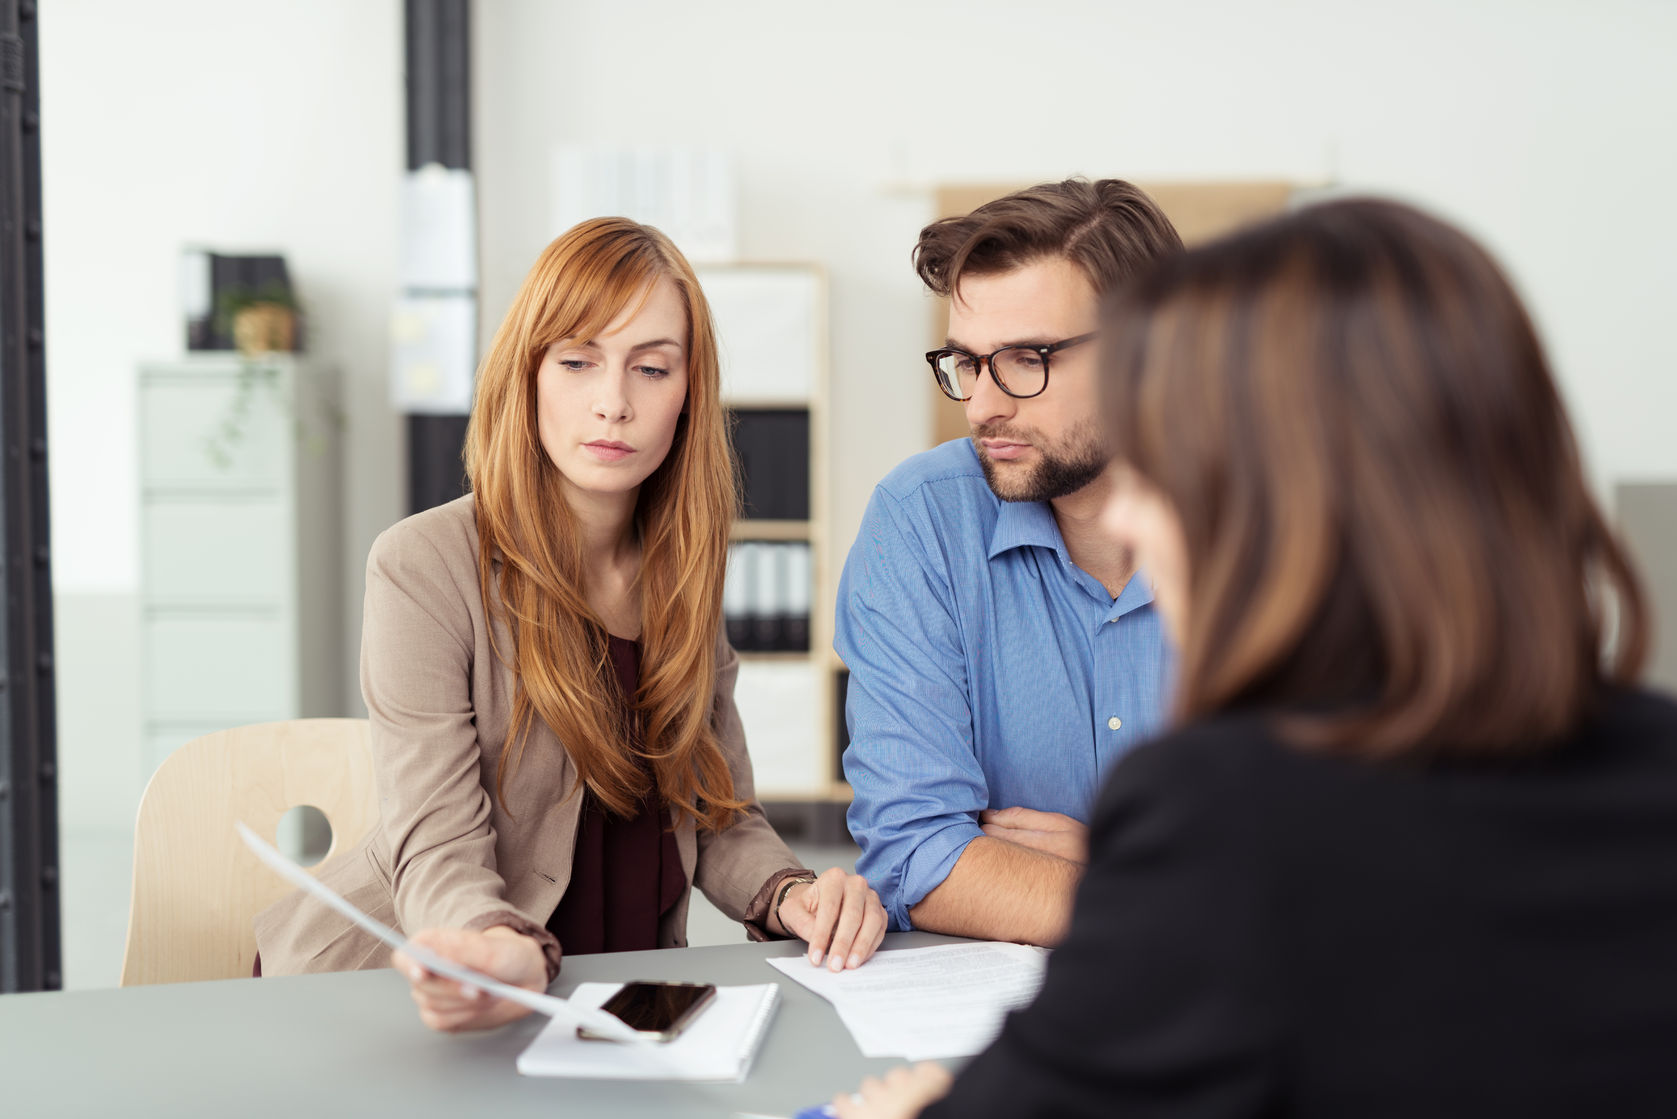 There are countless requests you are likely to make to your boss over the course of your career.